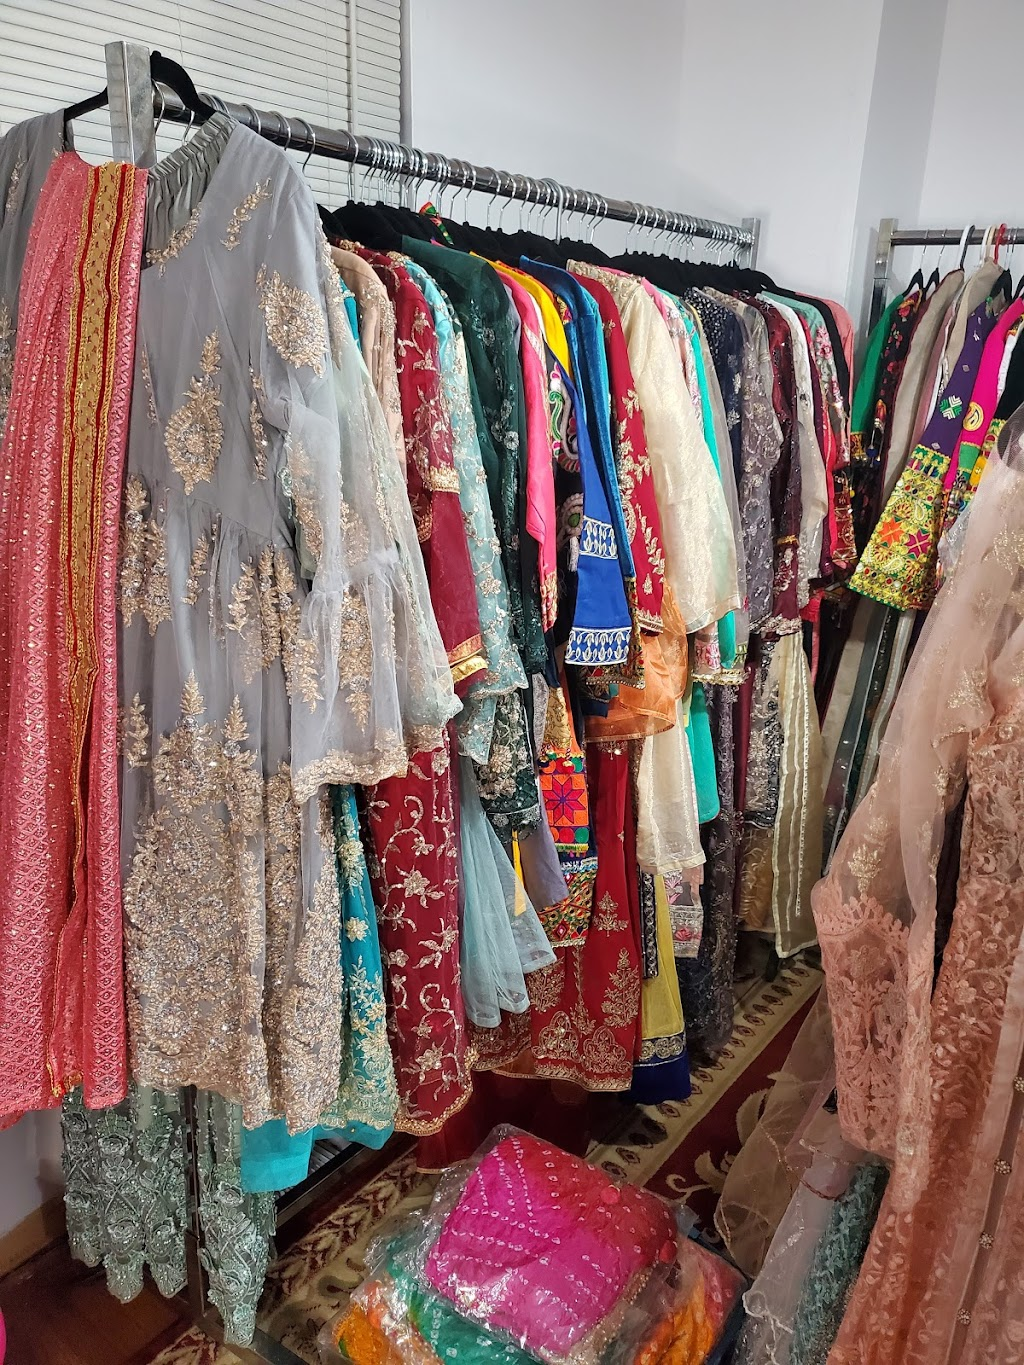 Elishah Clothing   clothing store   3227 Victory Crescent, Mississauga, ON L4T 1L7, Canada   4168324008 OR +1 416-832-4008